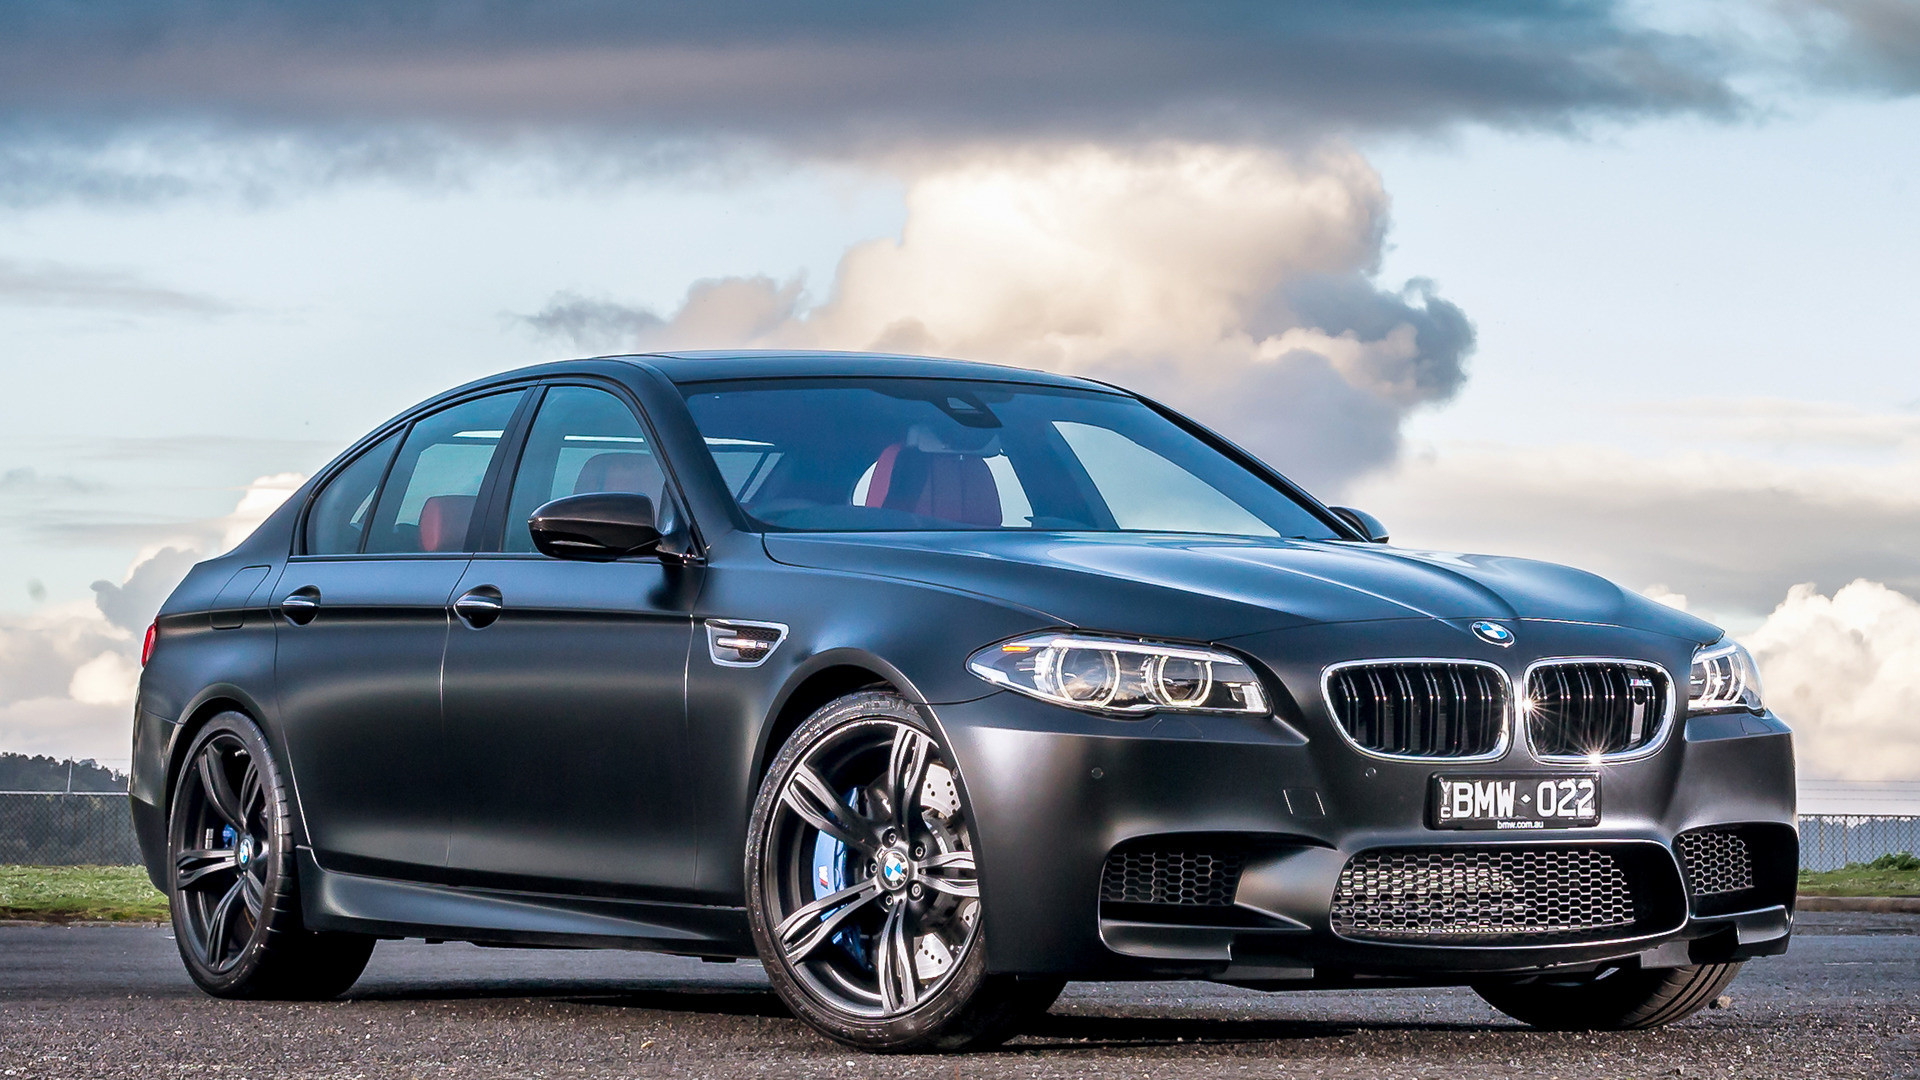 Bmw Hd Wallpapers Background: BMW M5 Wallpaper (76+ Images